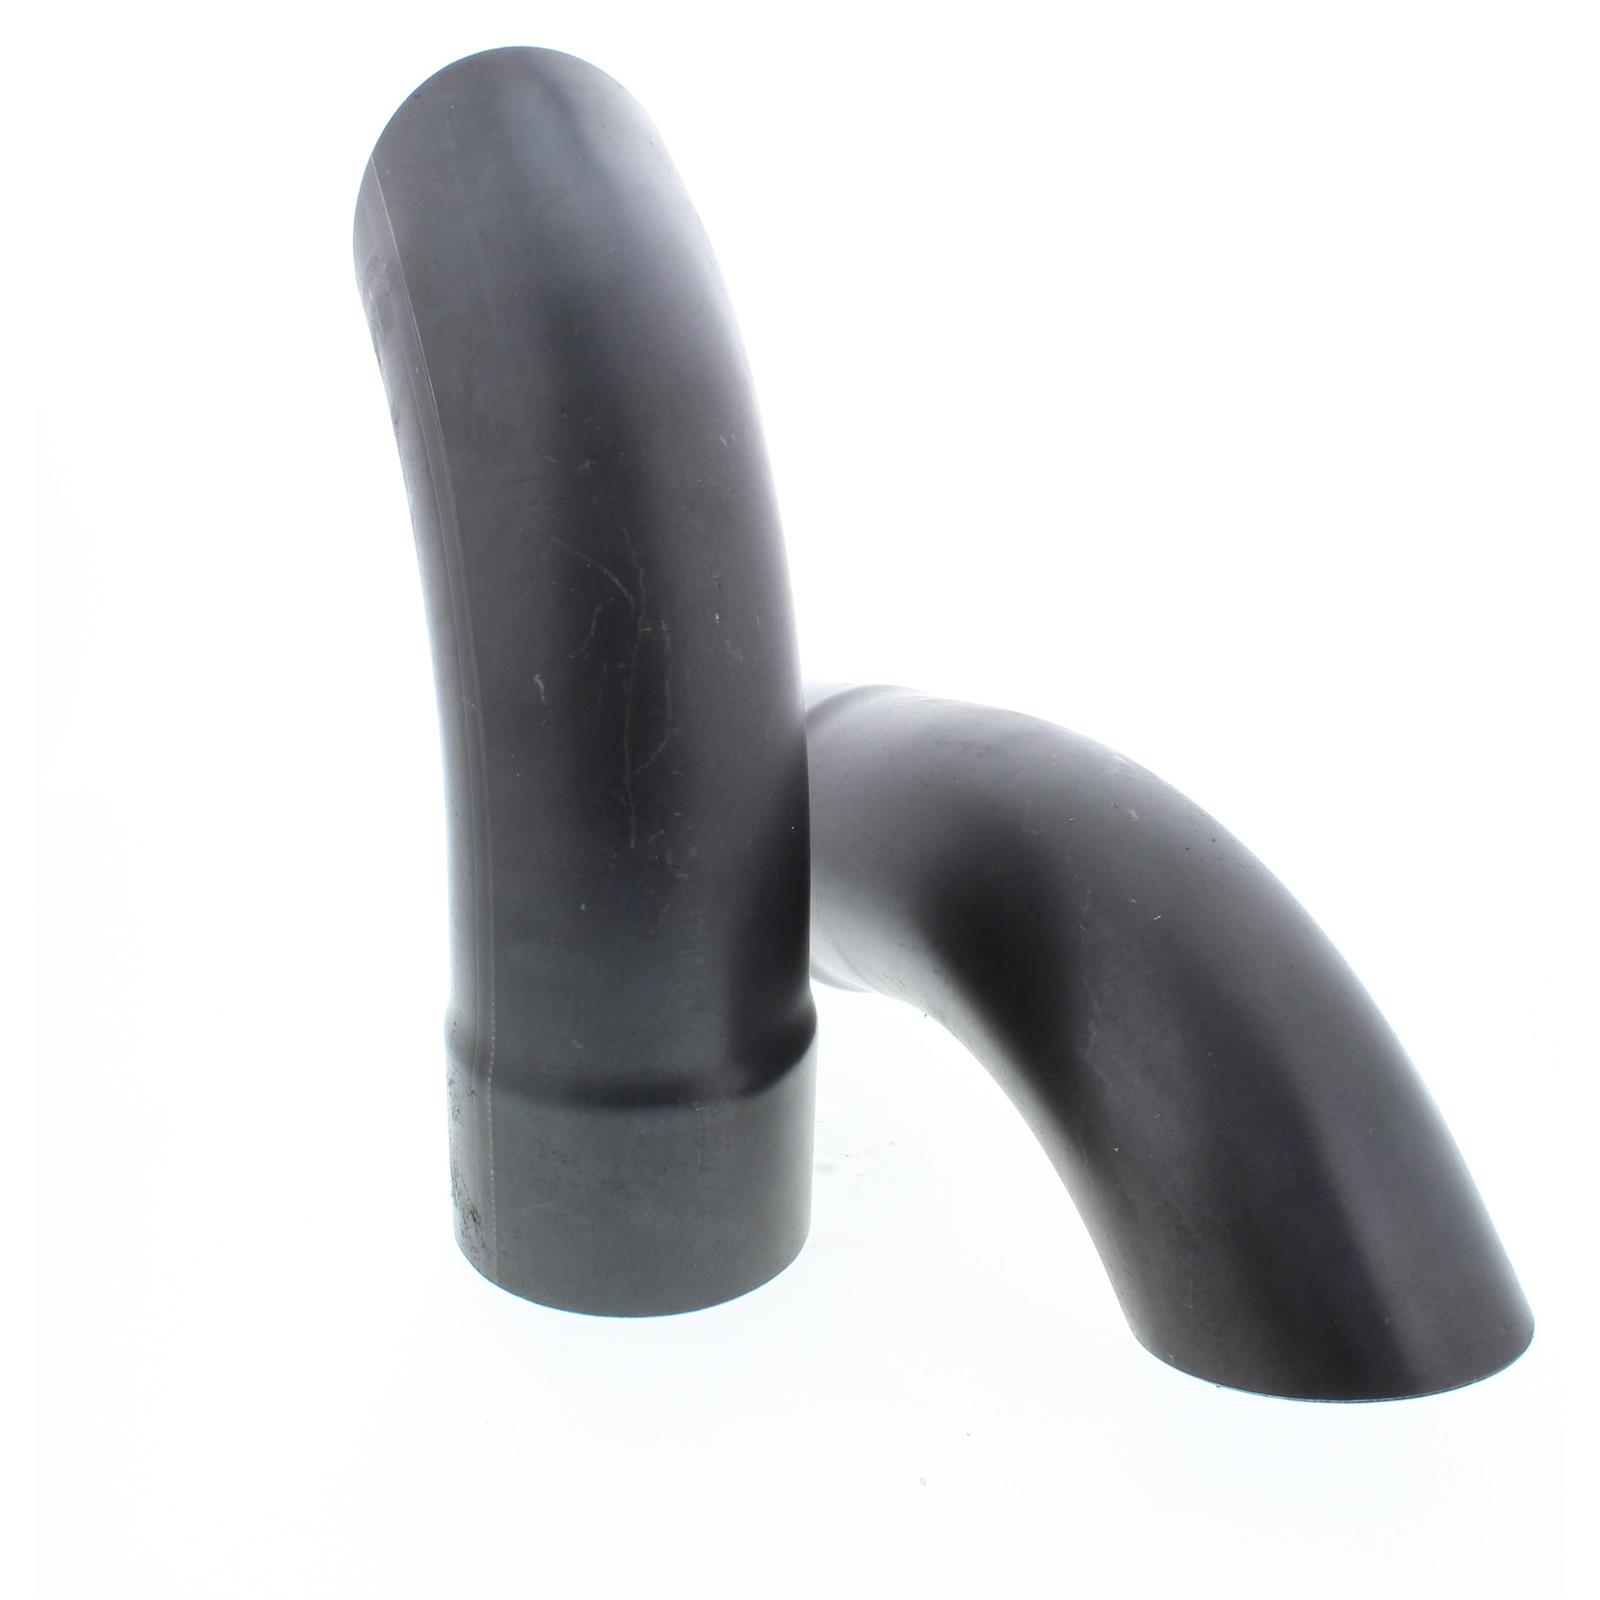 speedway turn down kickout tail pipe tips 3 x 7 inch